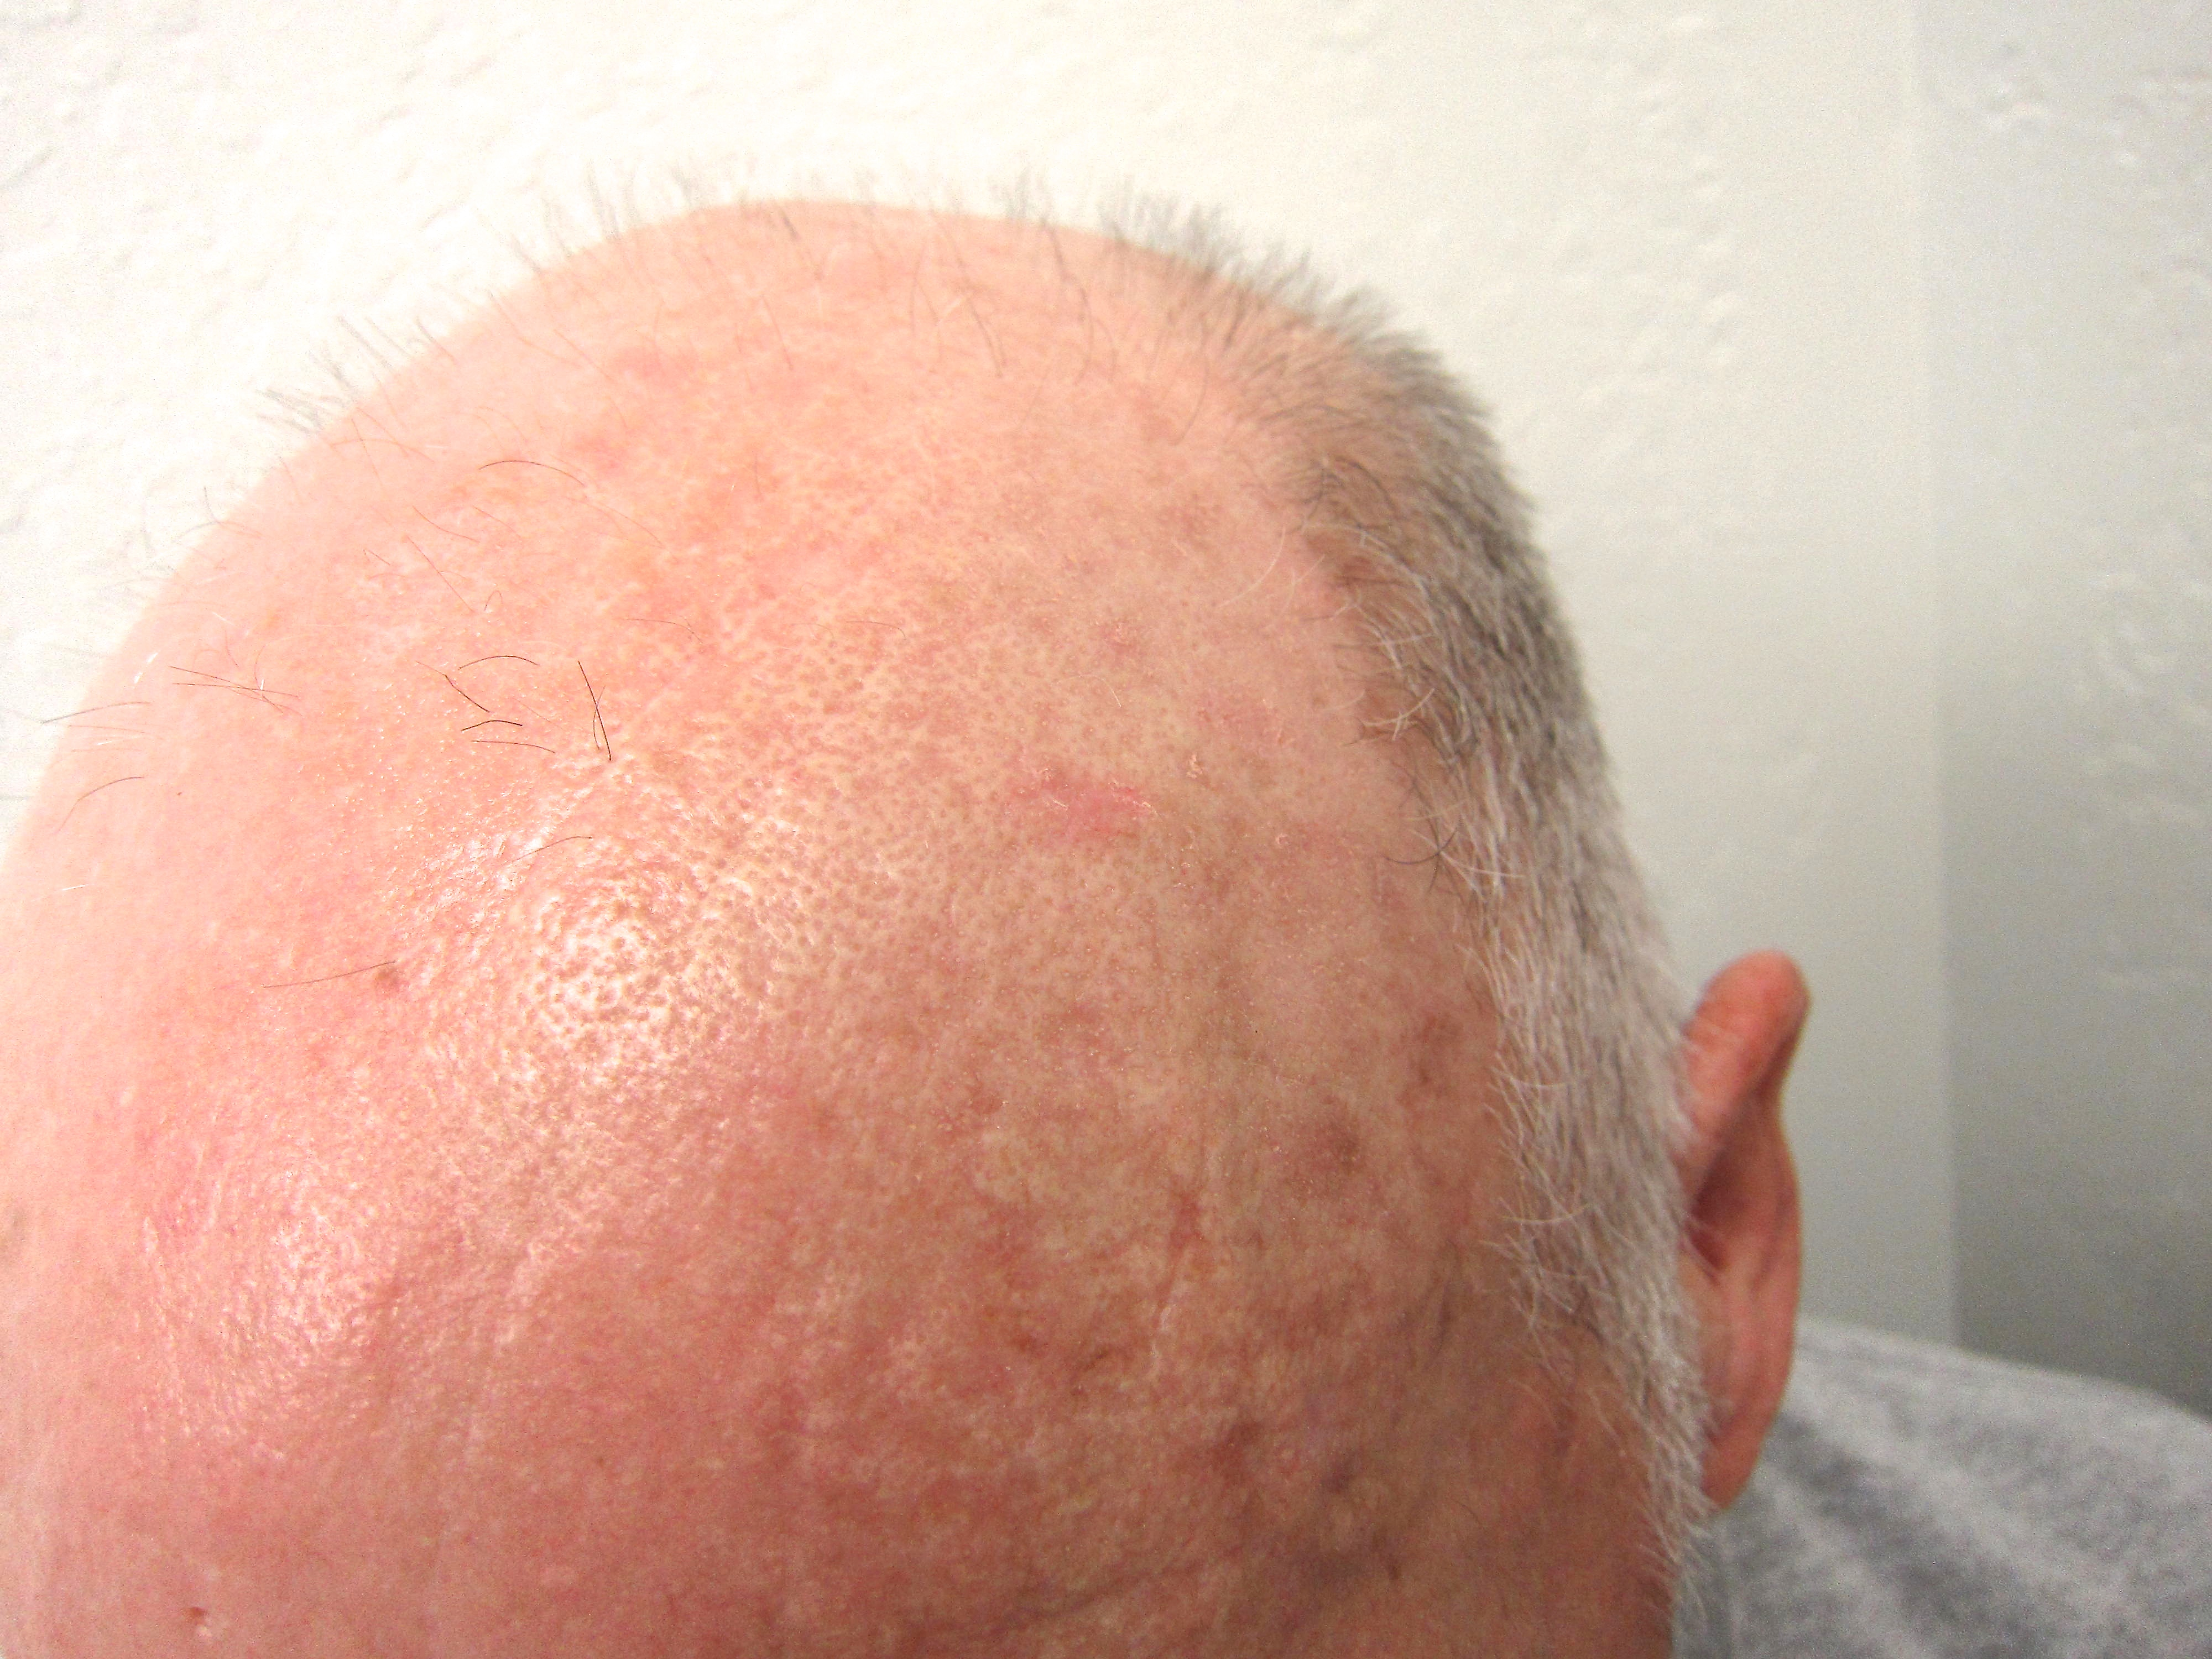 Actinic Keratosis Face Photos - Dermatology Education